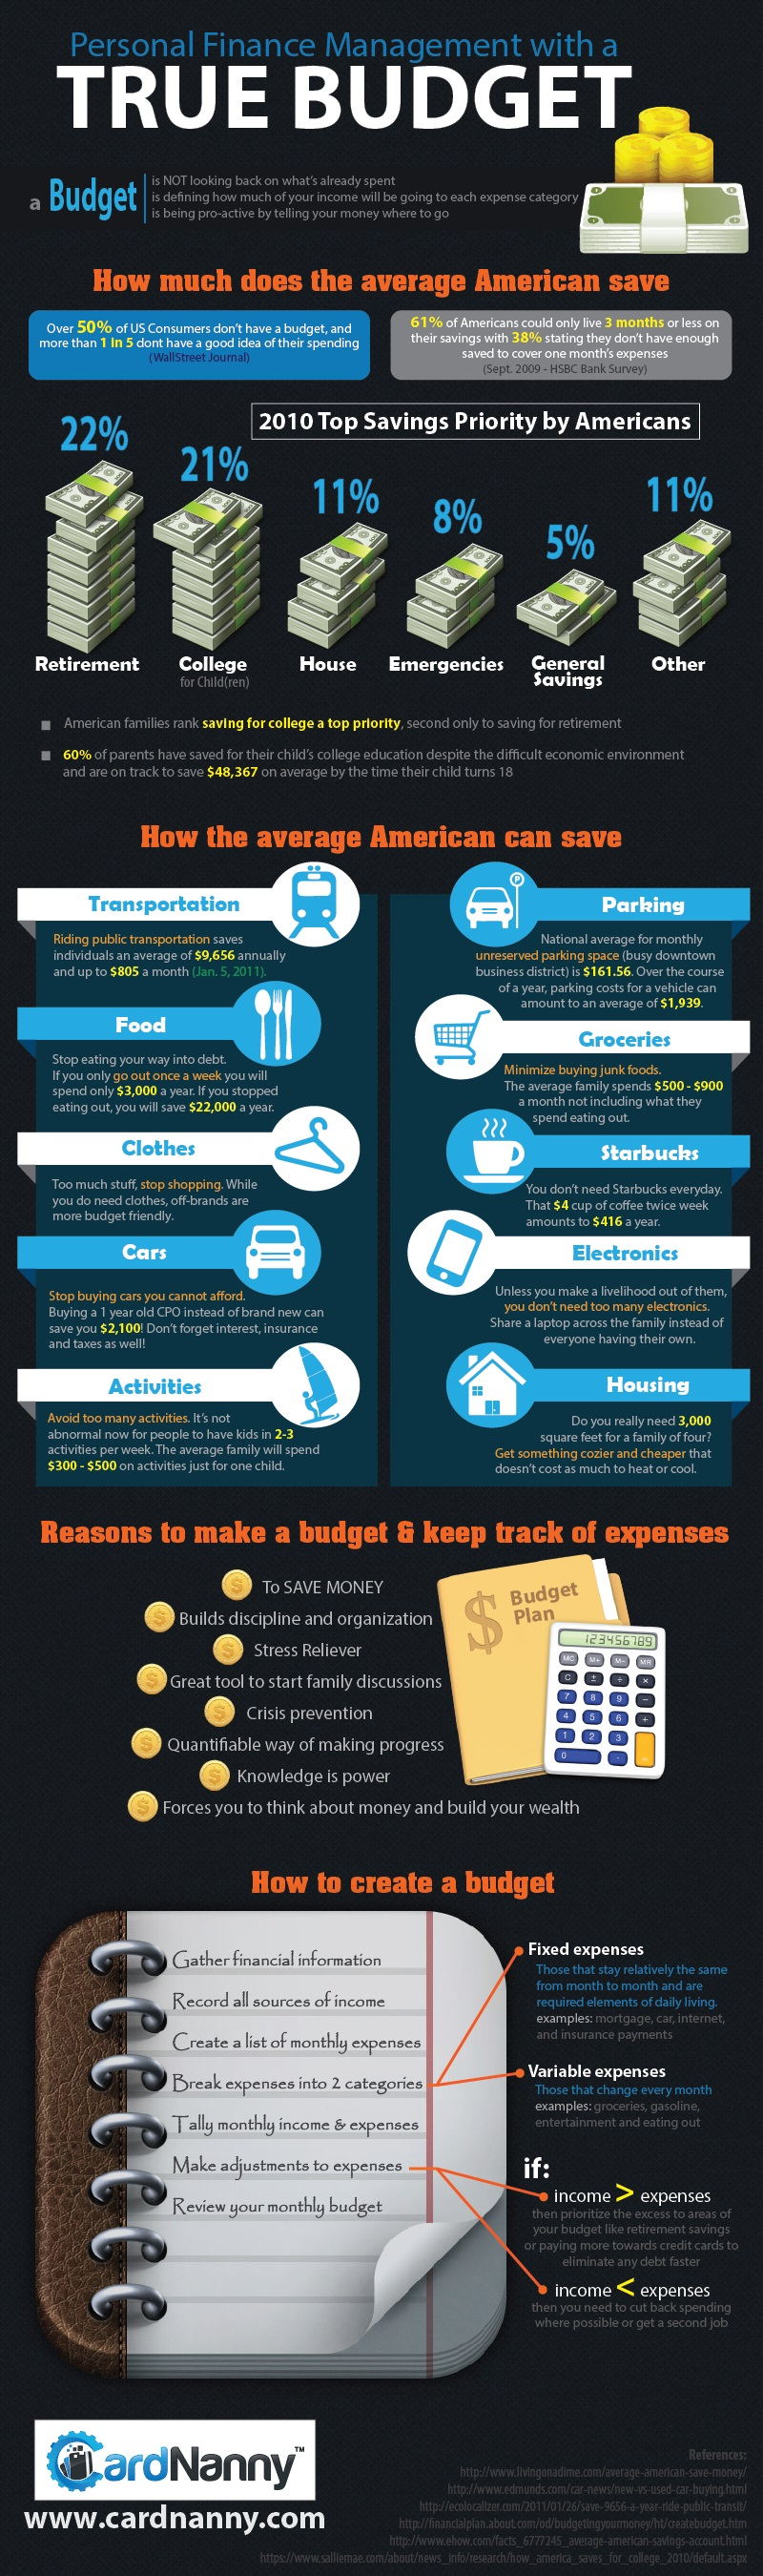 Budgeting-Tips-for-Low-Income